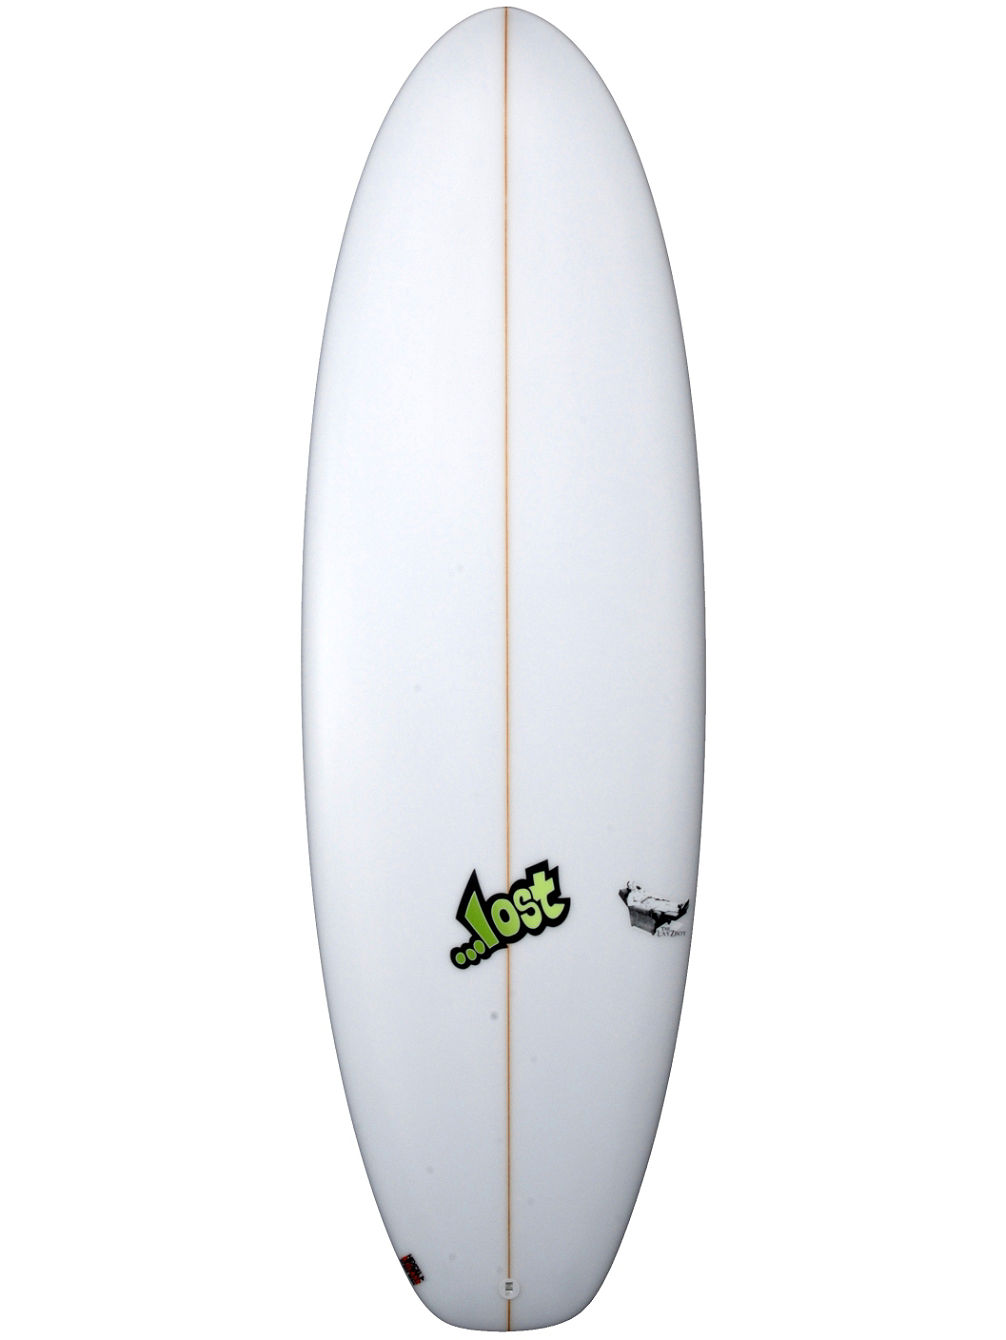 Lazy Toy 6'0 Surfboard